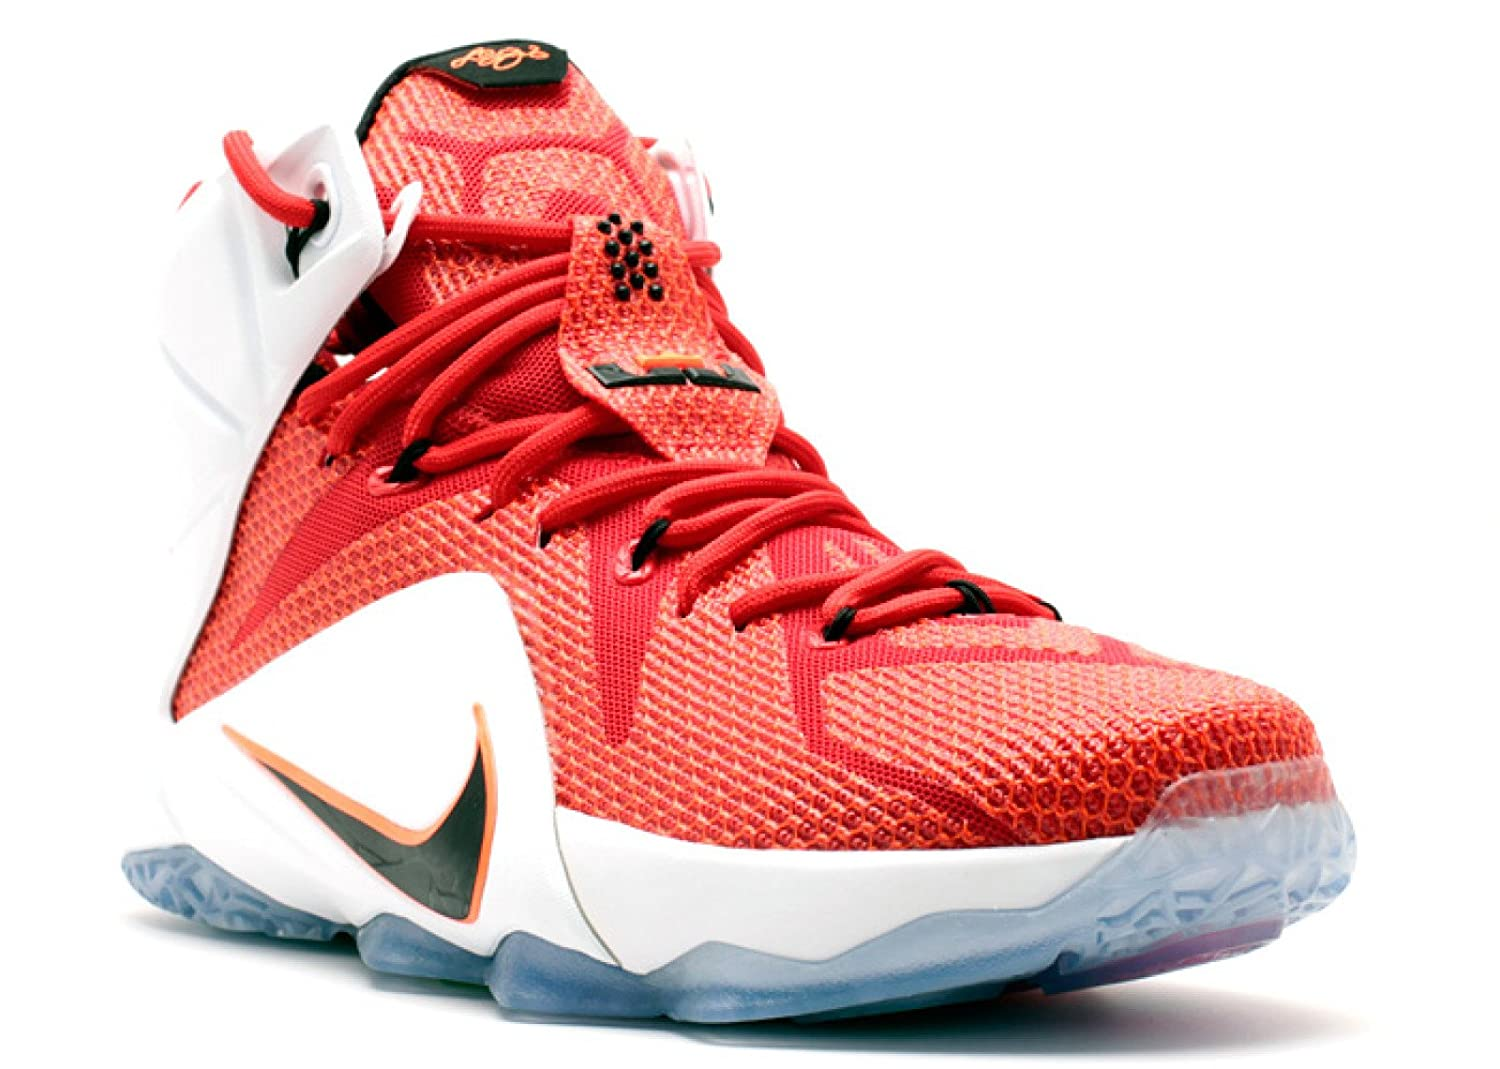 041cba81696b6 Nike Lebron XII 12 Heart of a Lion Men's Basketball Shoes 684593-601 (9.5)  Red